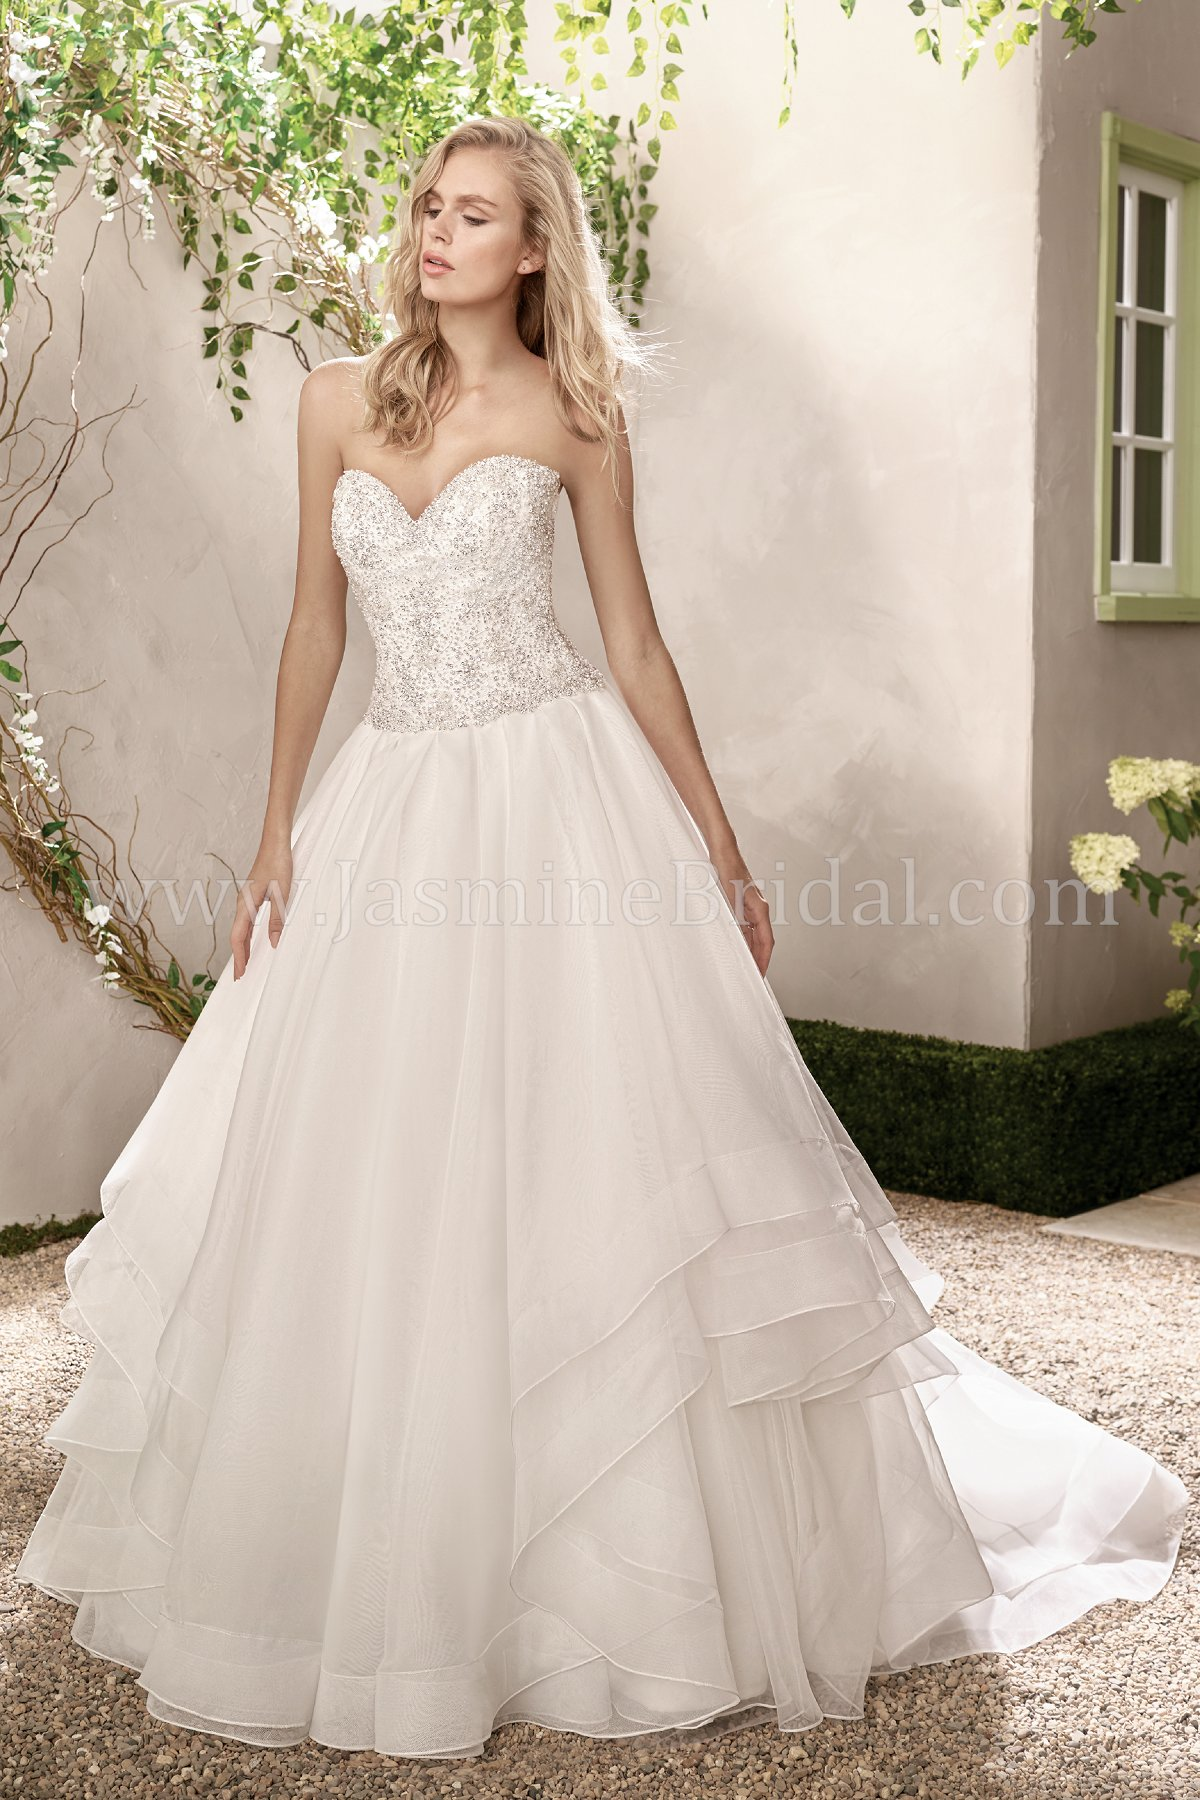 F191019 Sweetheart Strapless Organza & Tulle Wedding Dress with Beading